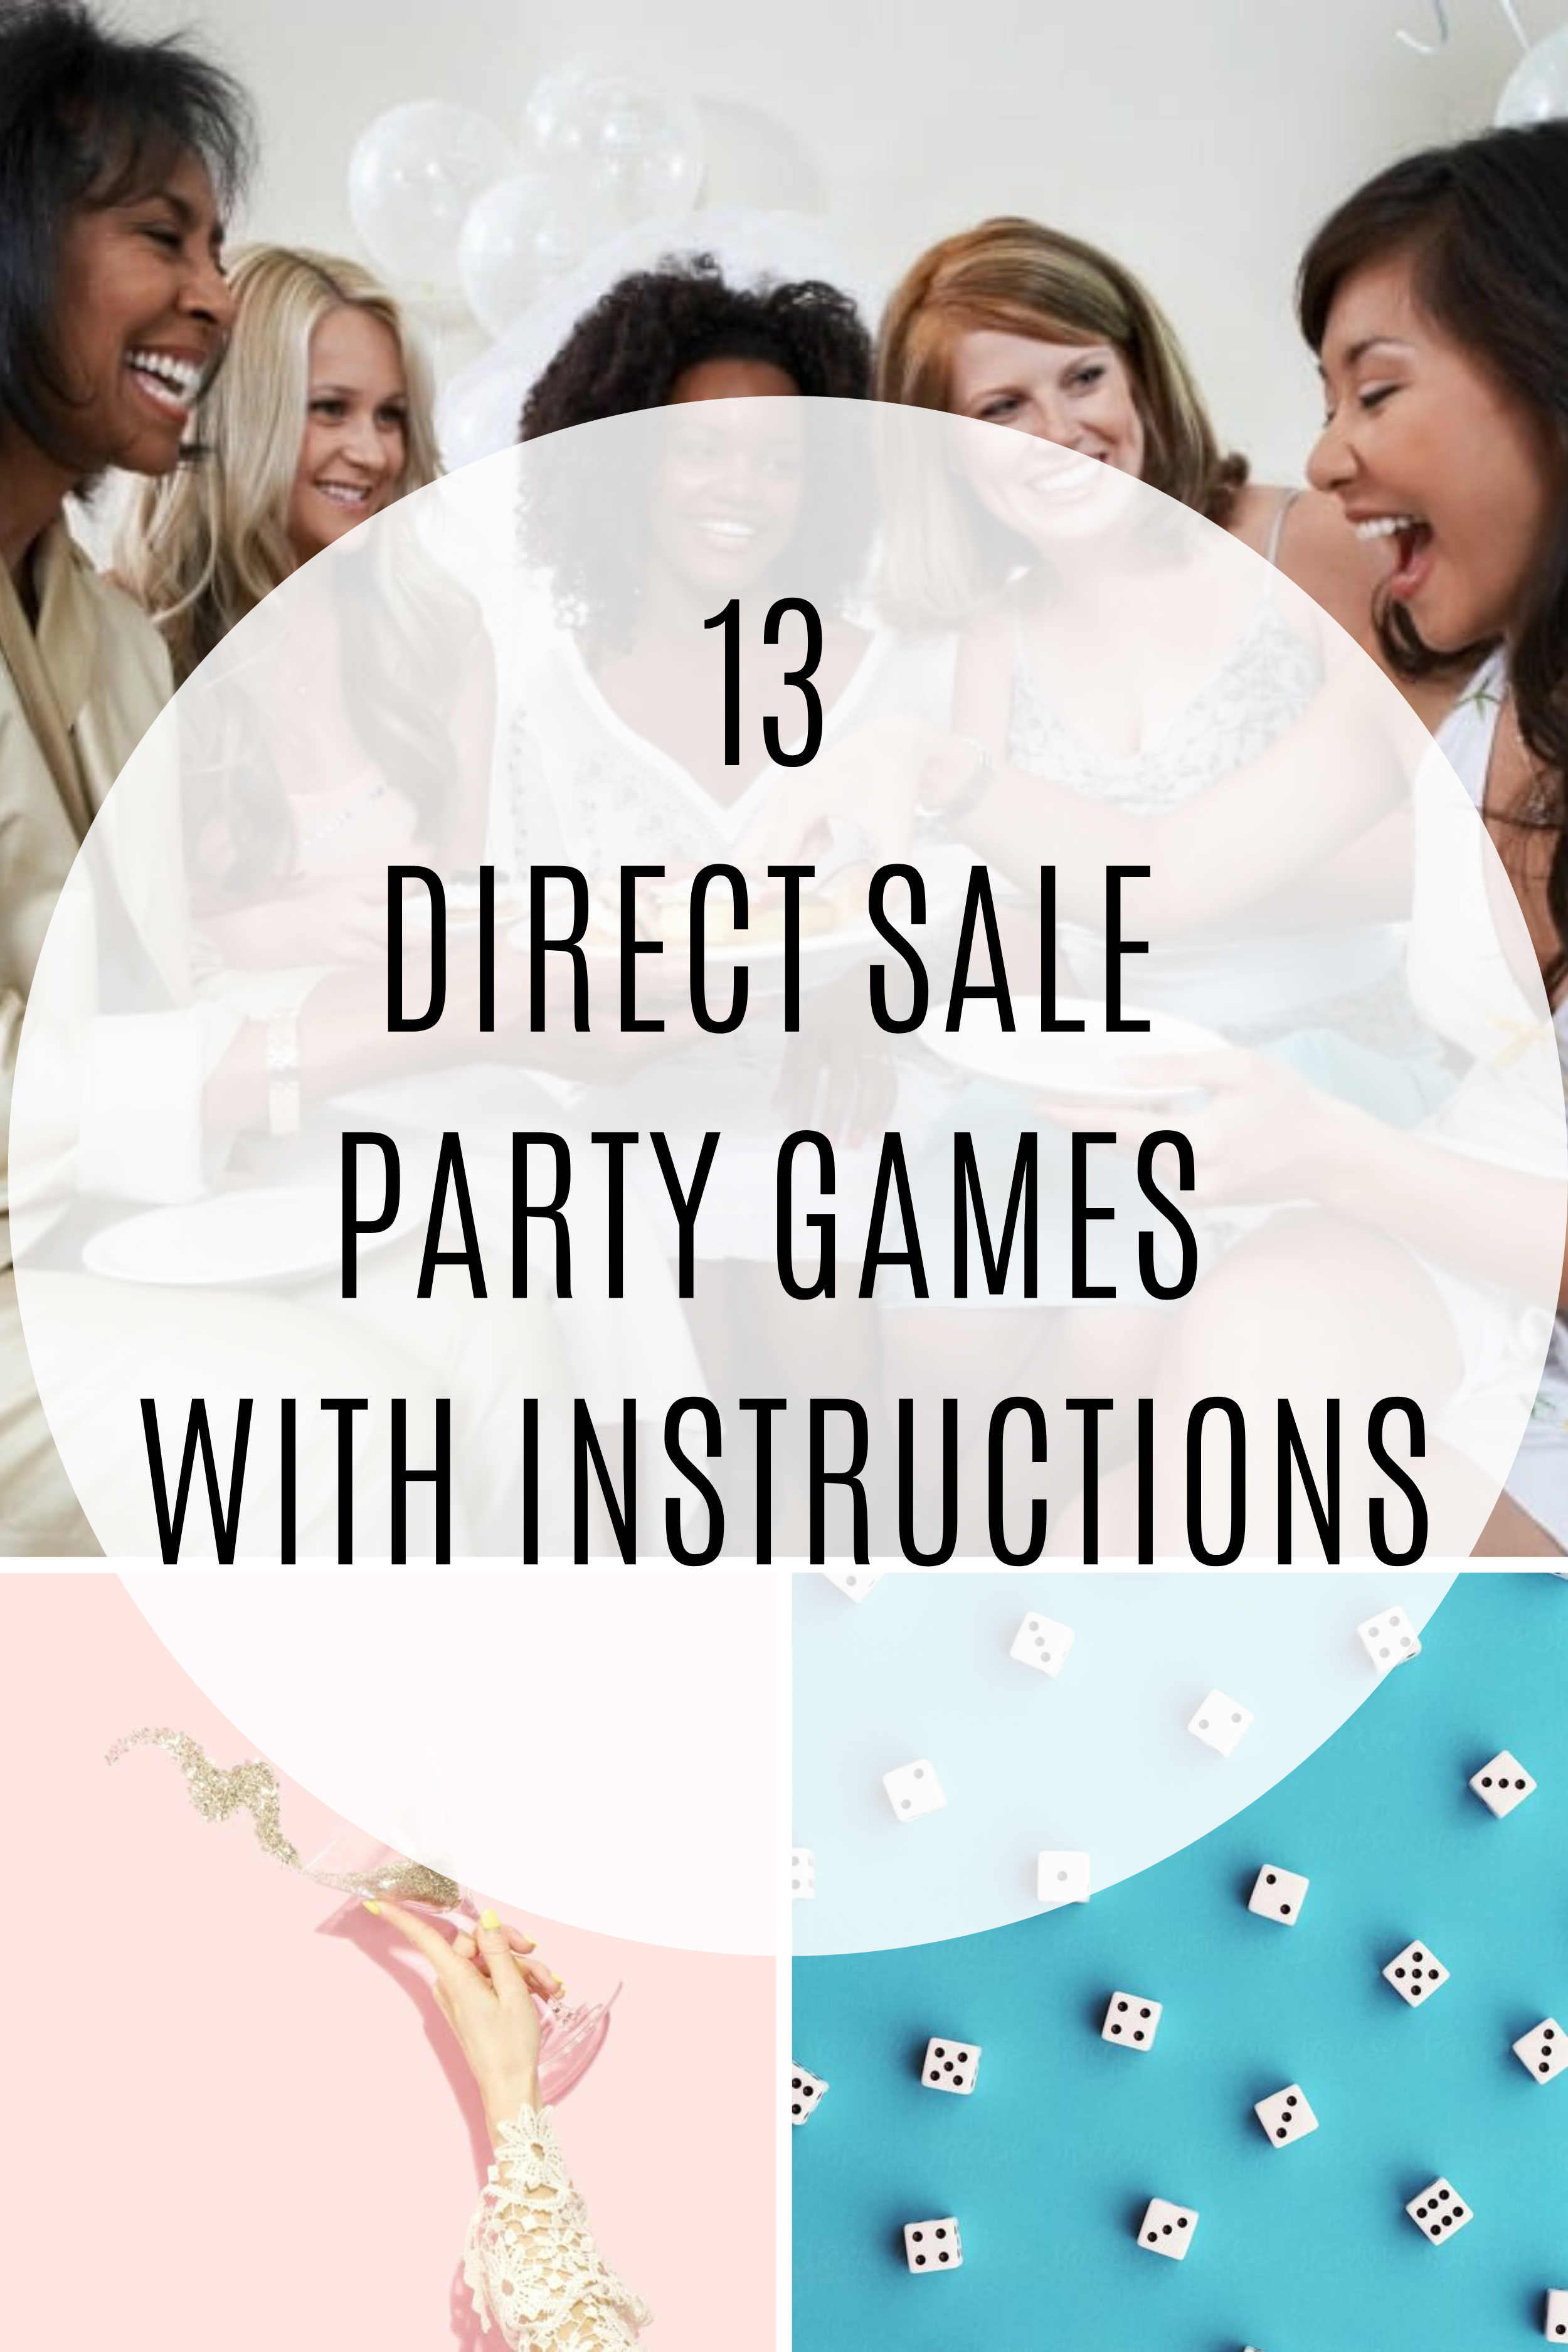 Direct Sale Party Games